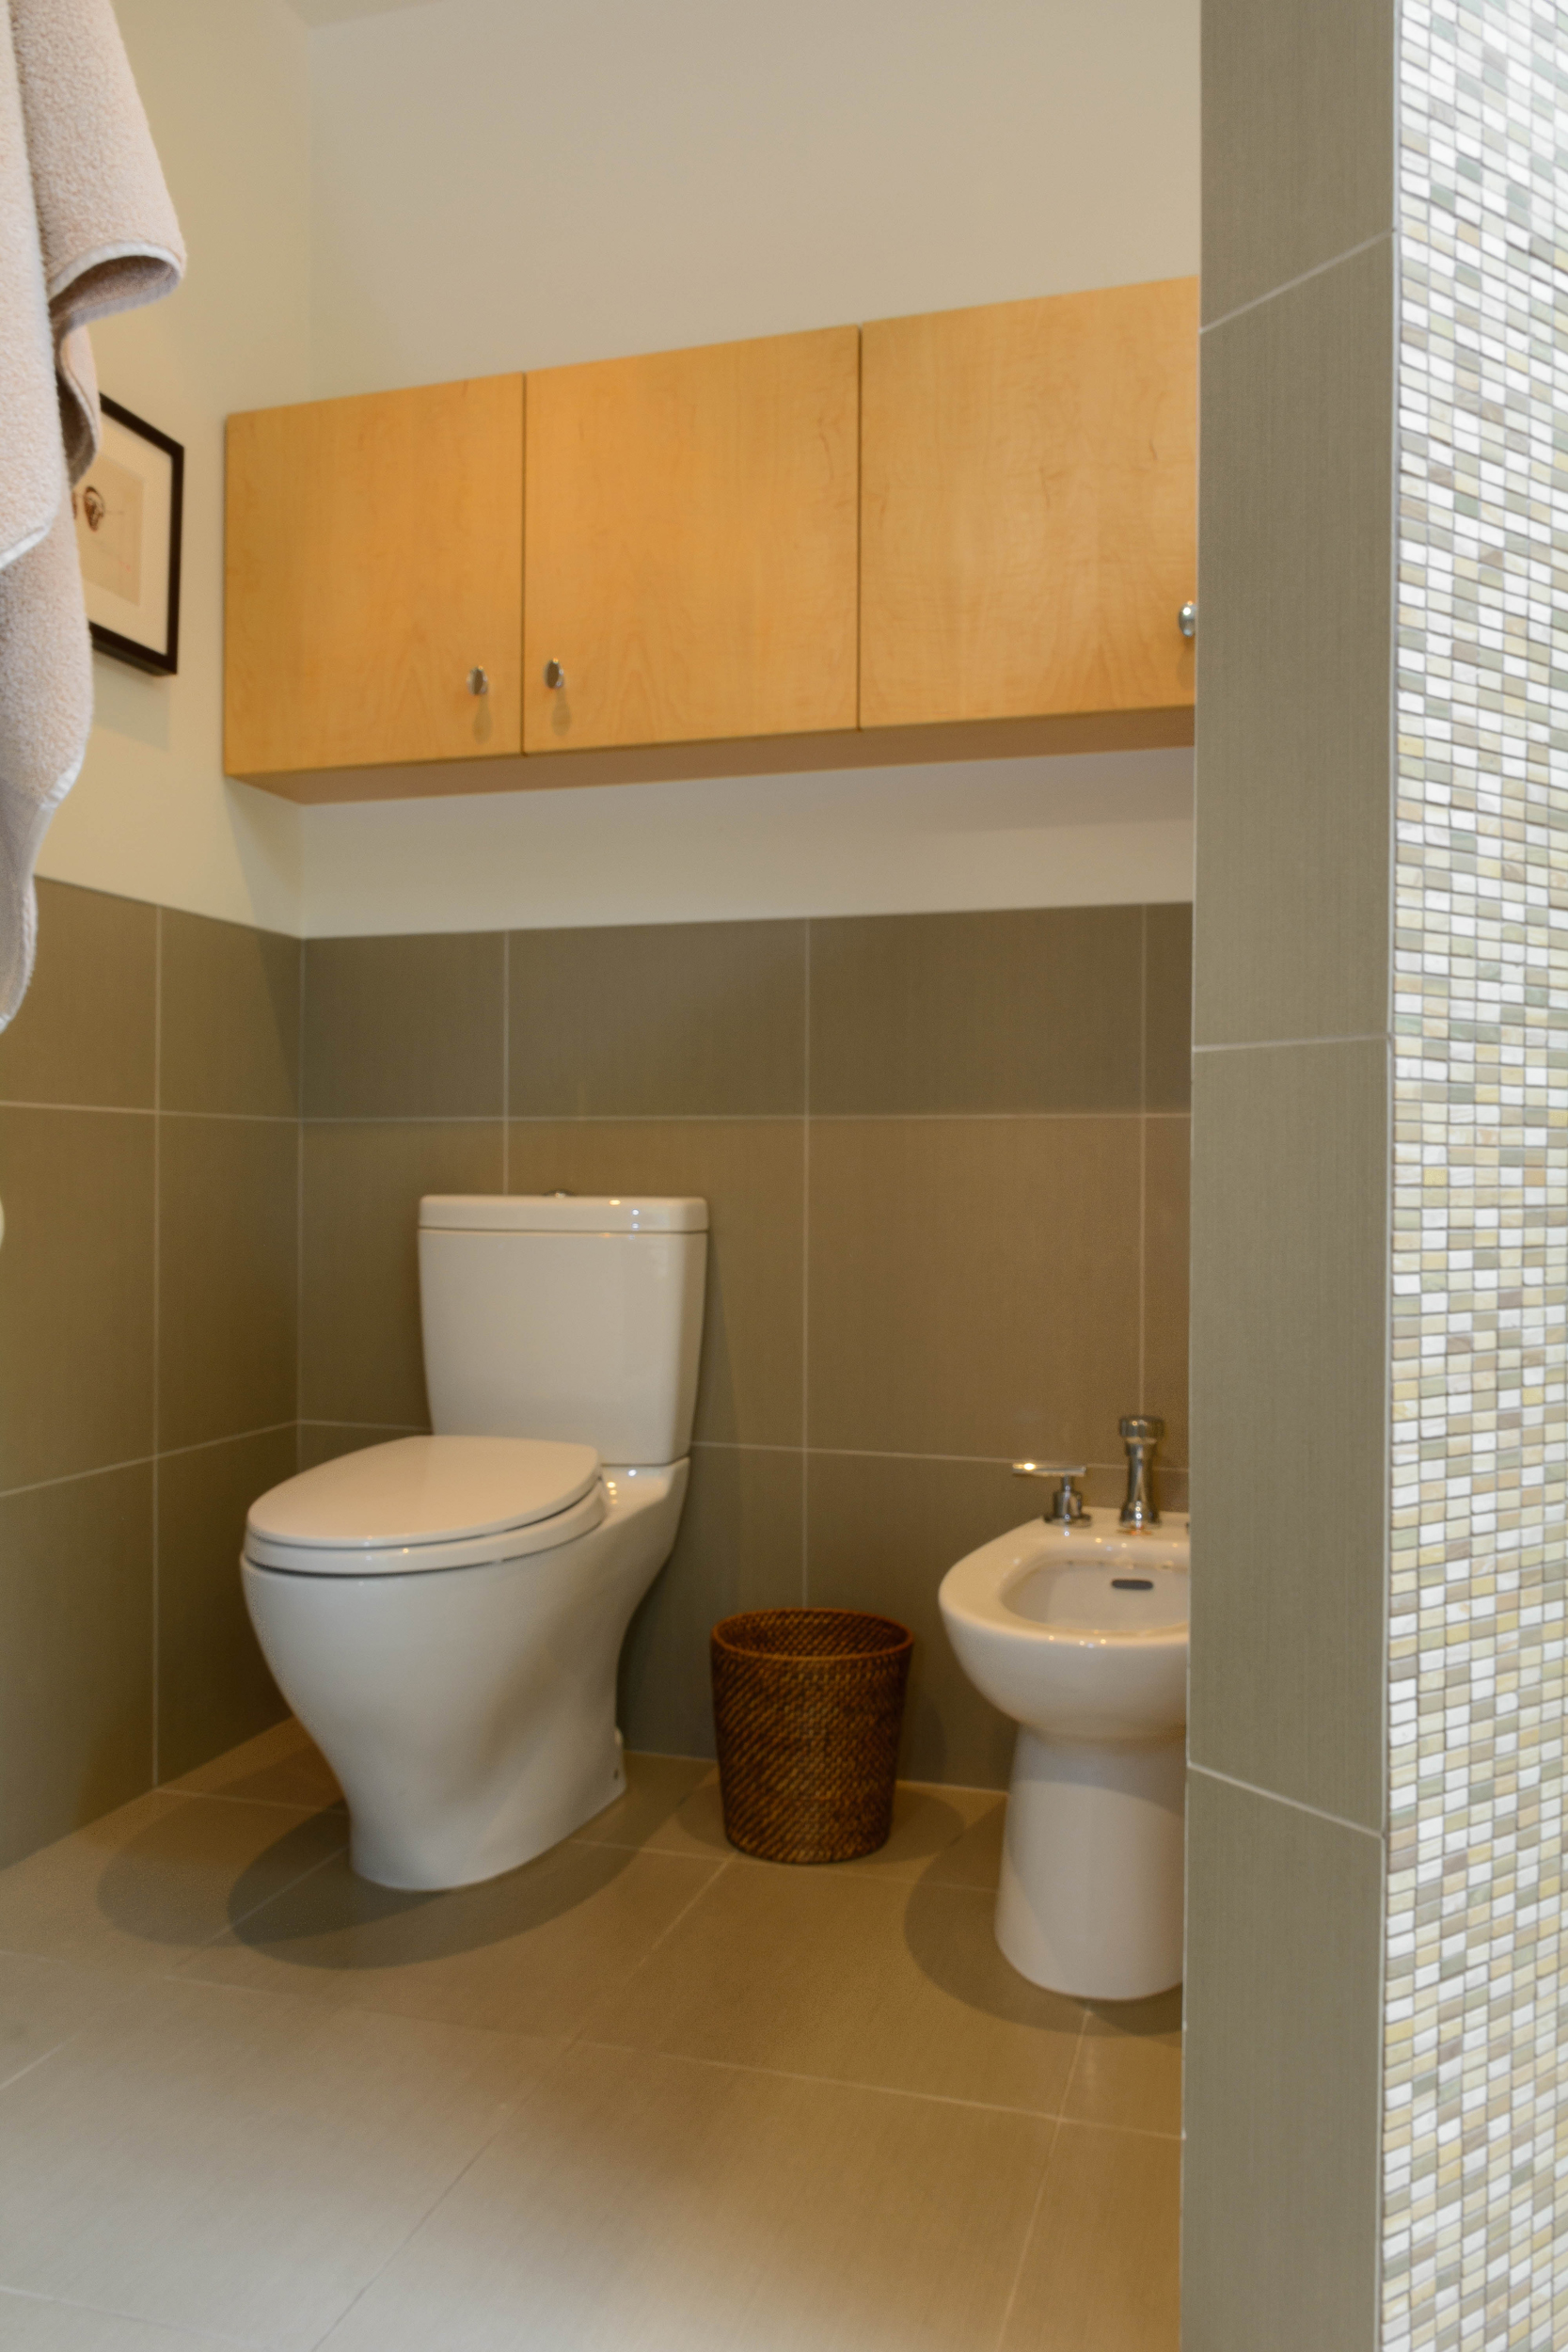 Toilet and bidet hidden by a curved mosaic tile privacy wall